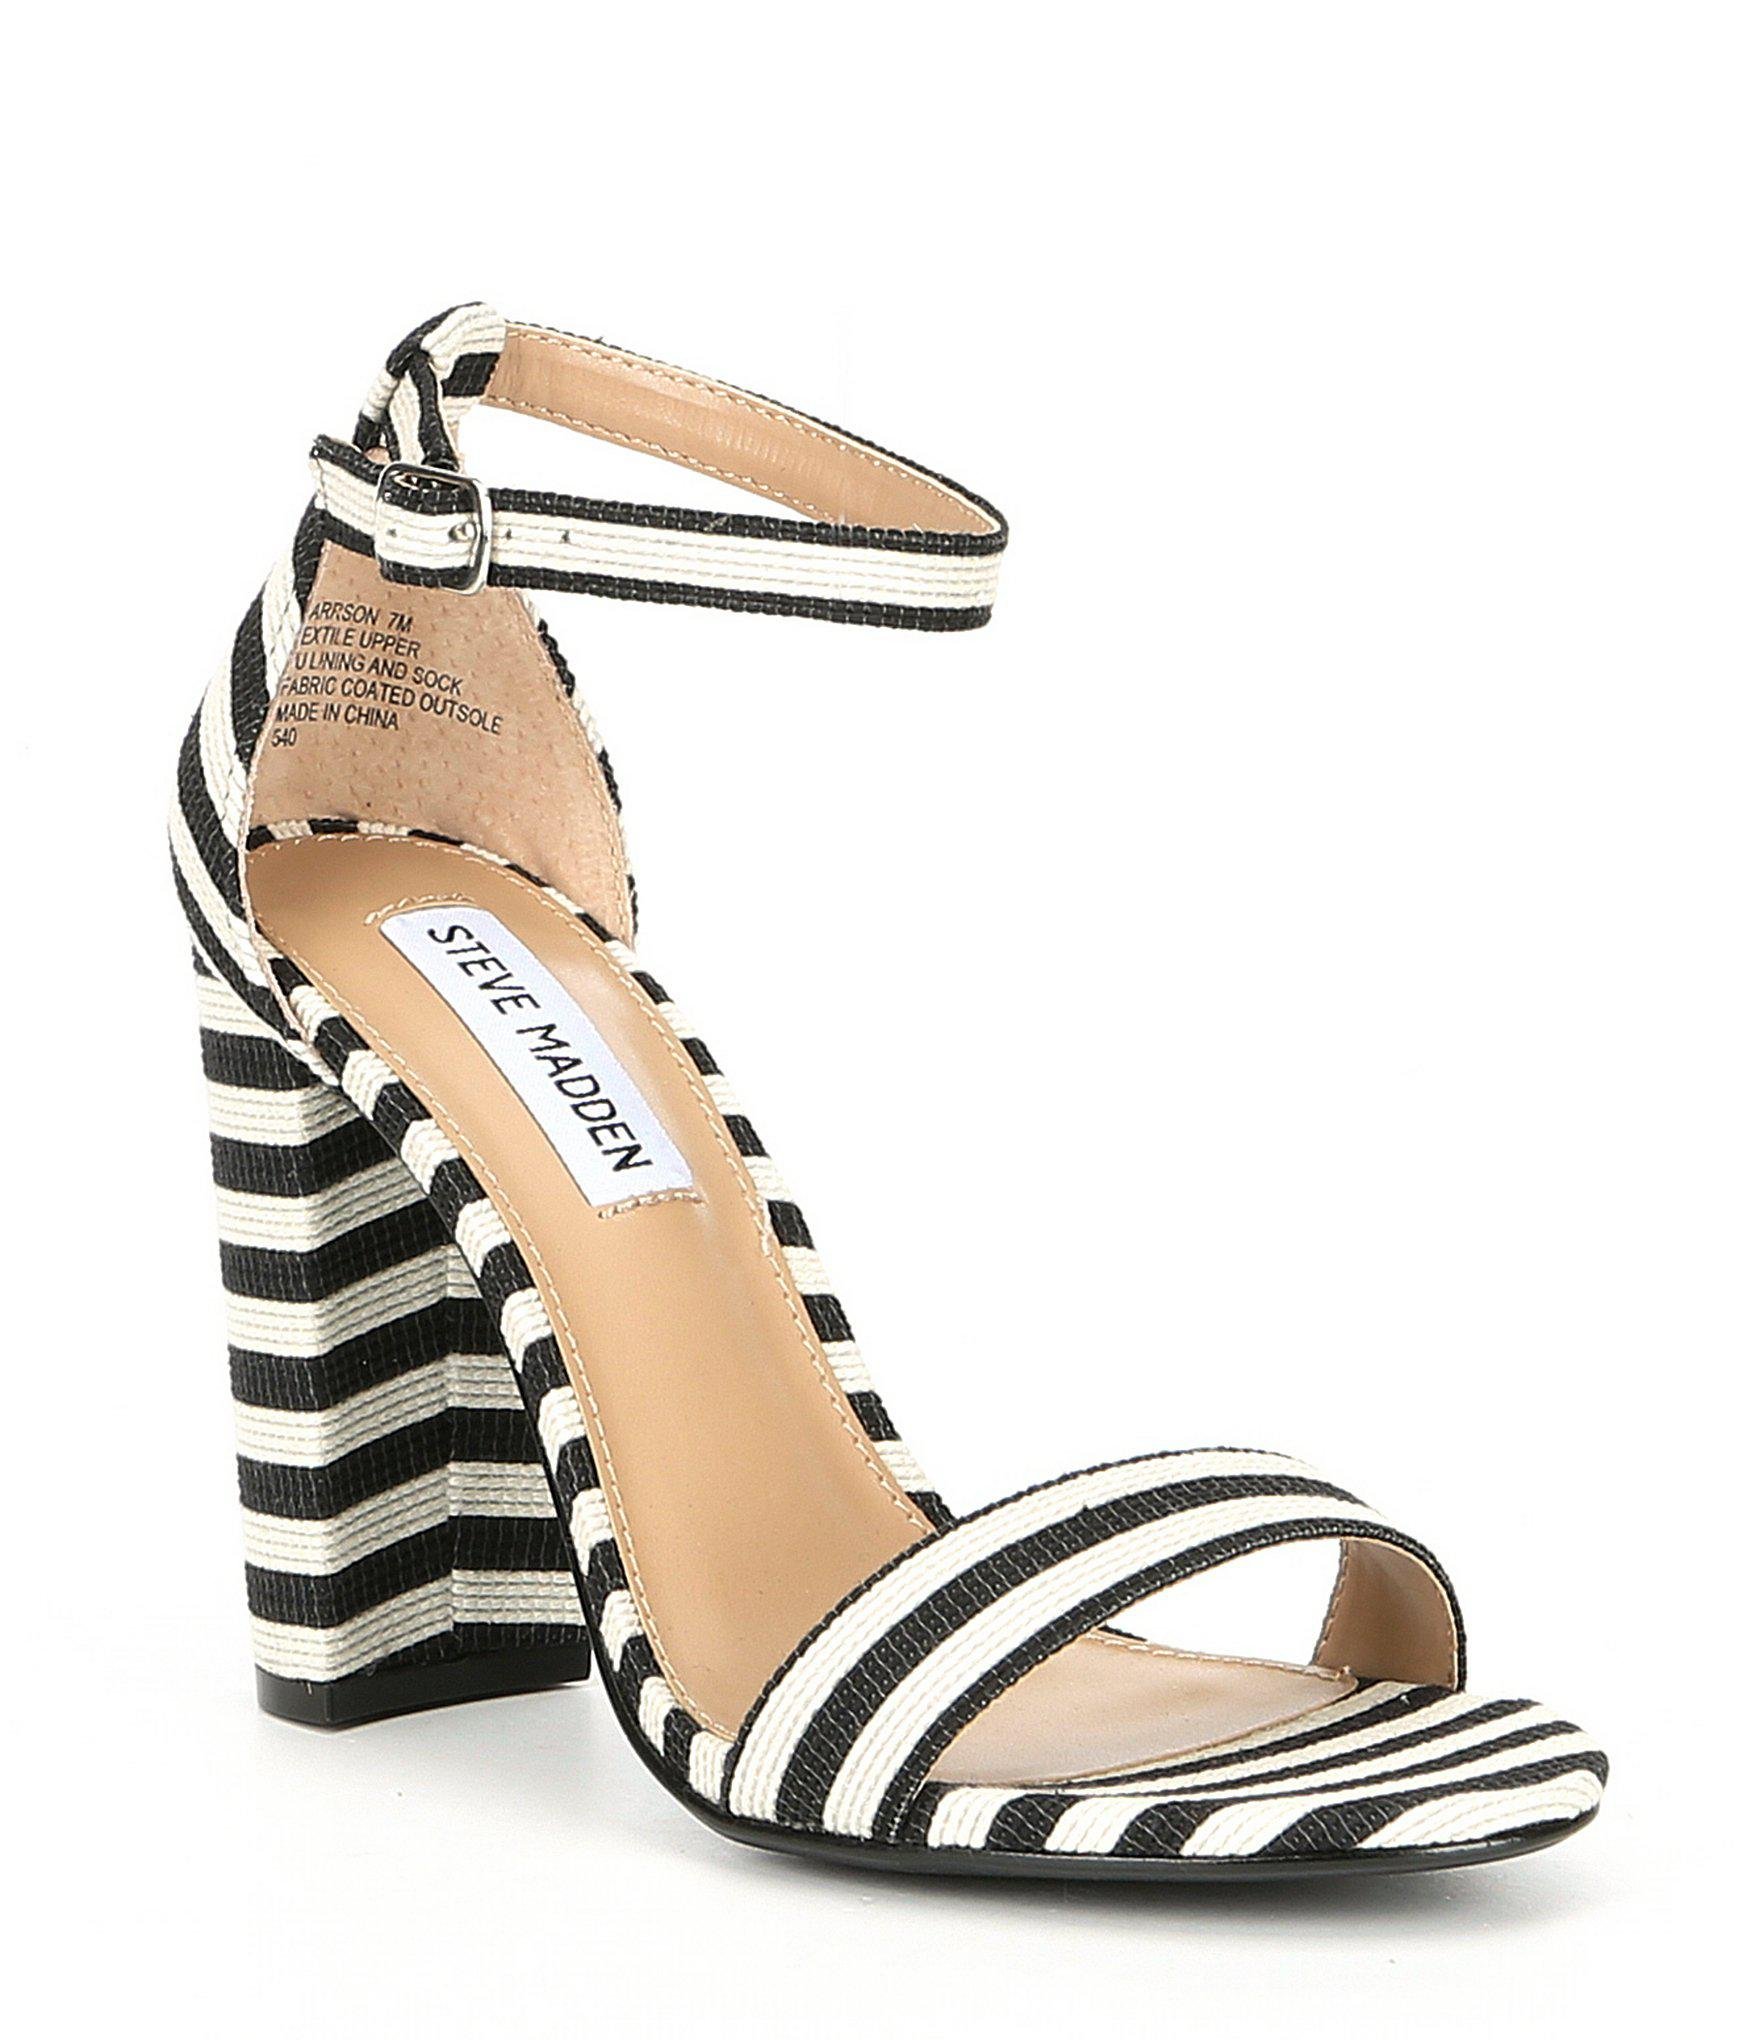 0613eac2f03 Steve Madden - Black Carrson Ankle Strap Striped Block Heel Dress Sandals -  Lyst. View fullscreen